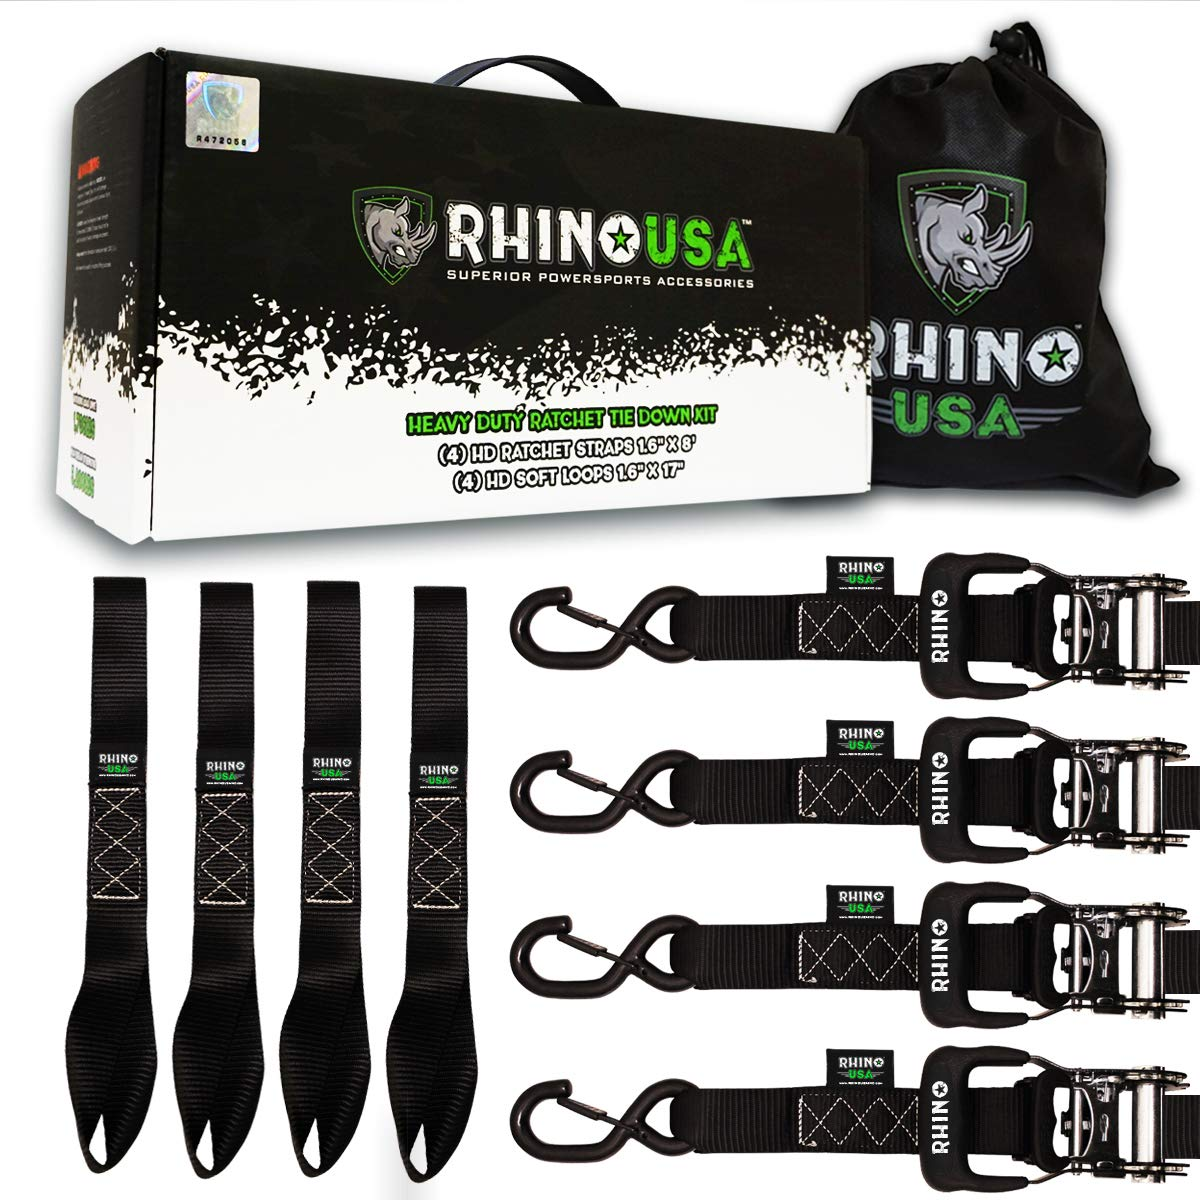 RHINO USA Ratchet Straps Motorcycle Tie Down Kit, 5,208 Break Strength - Includes (4) Heavy Duty 1.6'' x 8' Rachet Tiedowns with Padded Handles & Coated Chromoly S Hooks + (4) Soft Loop Tie-Downs…